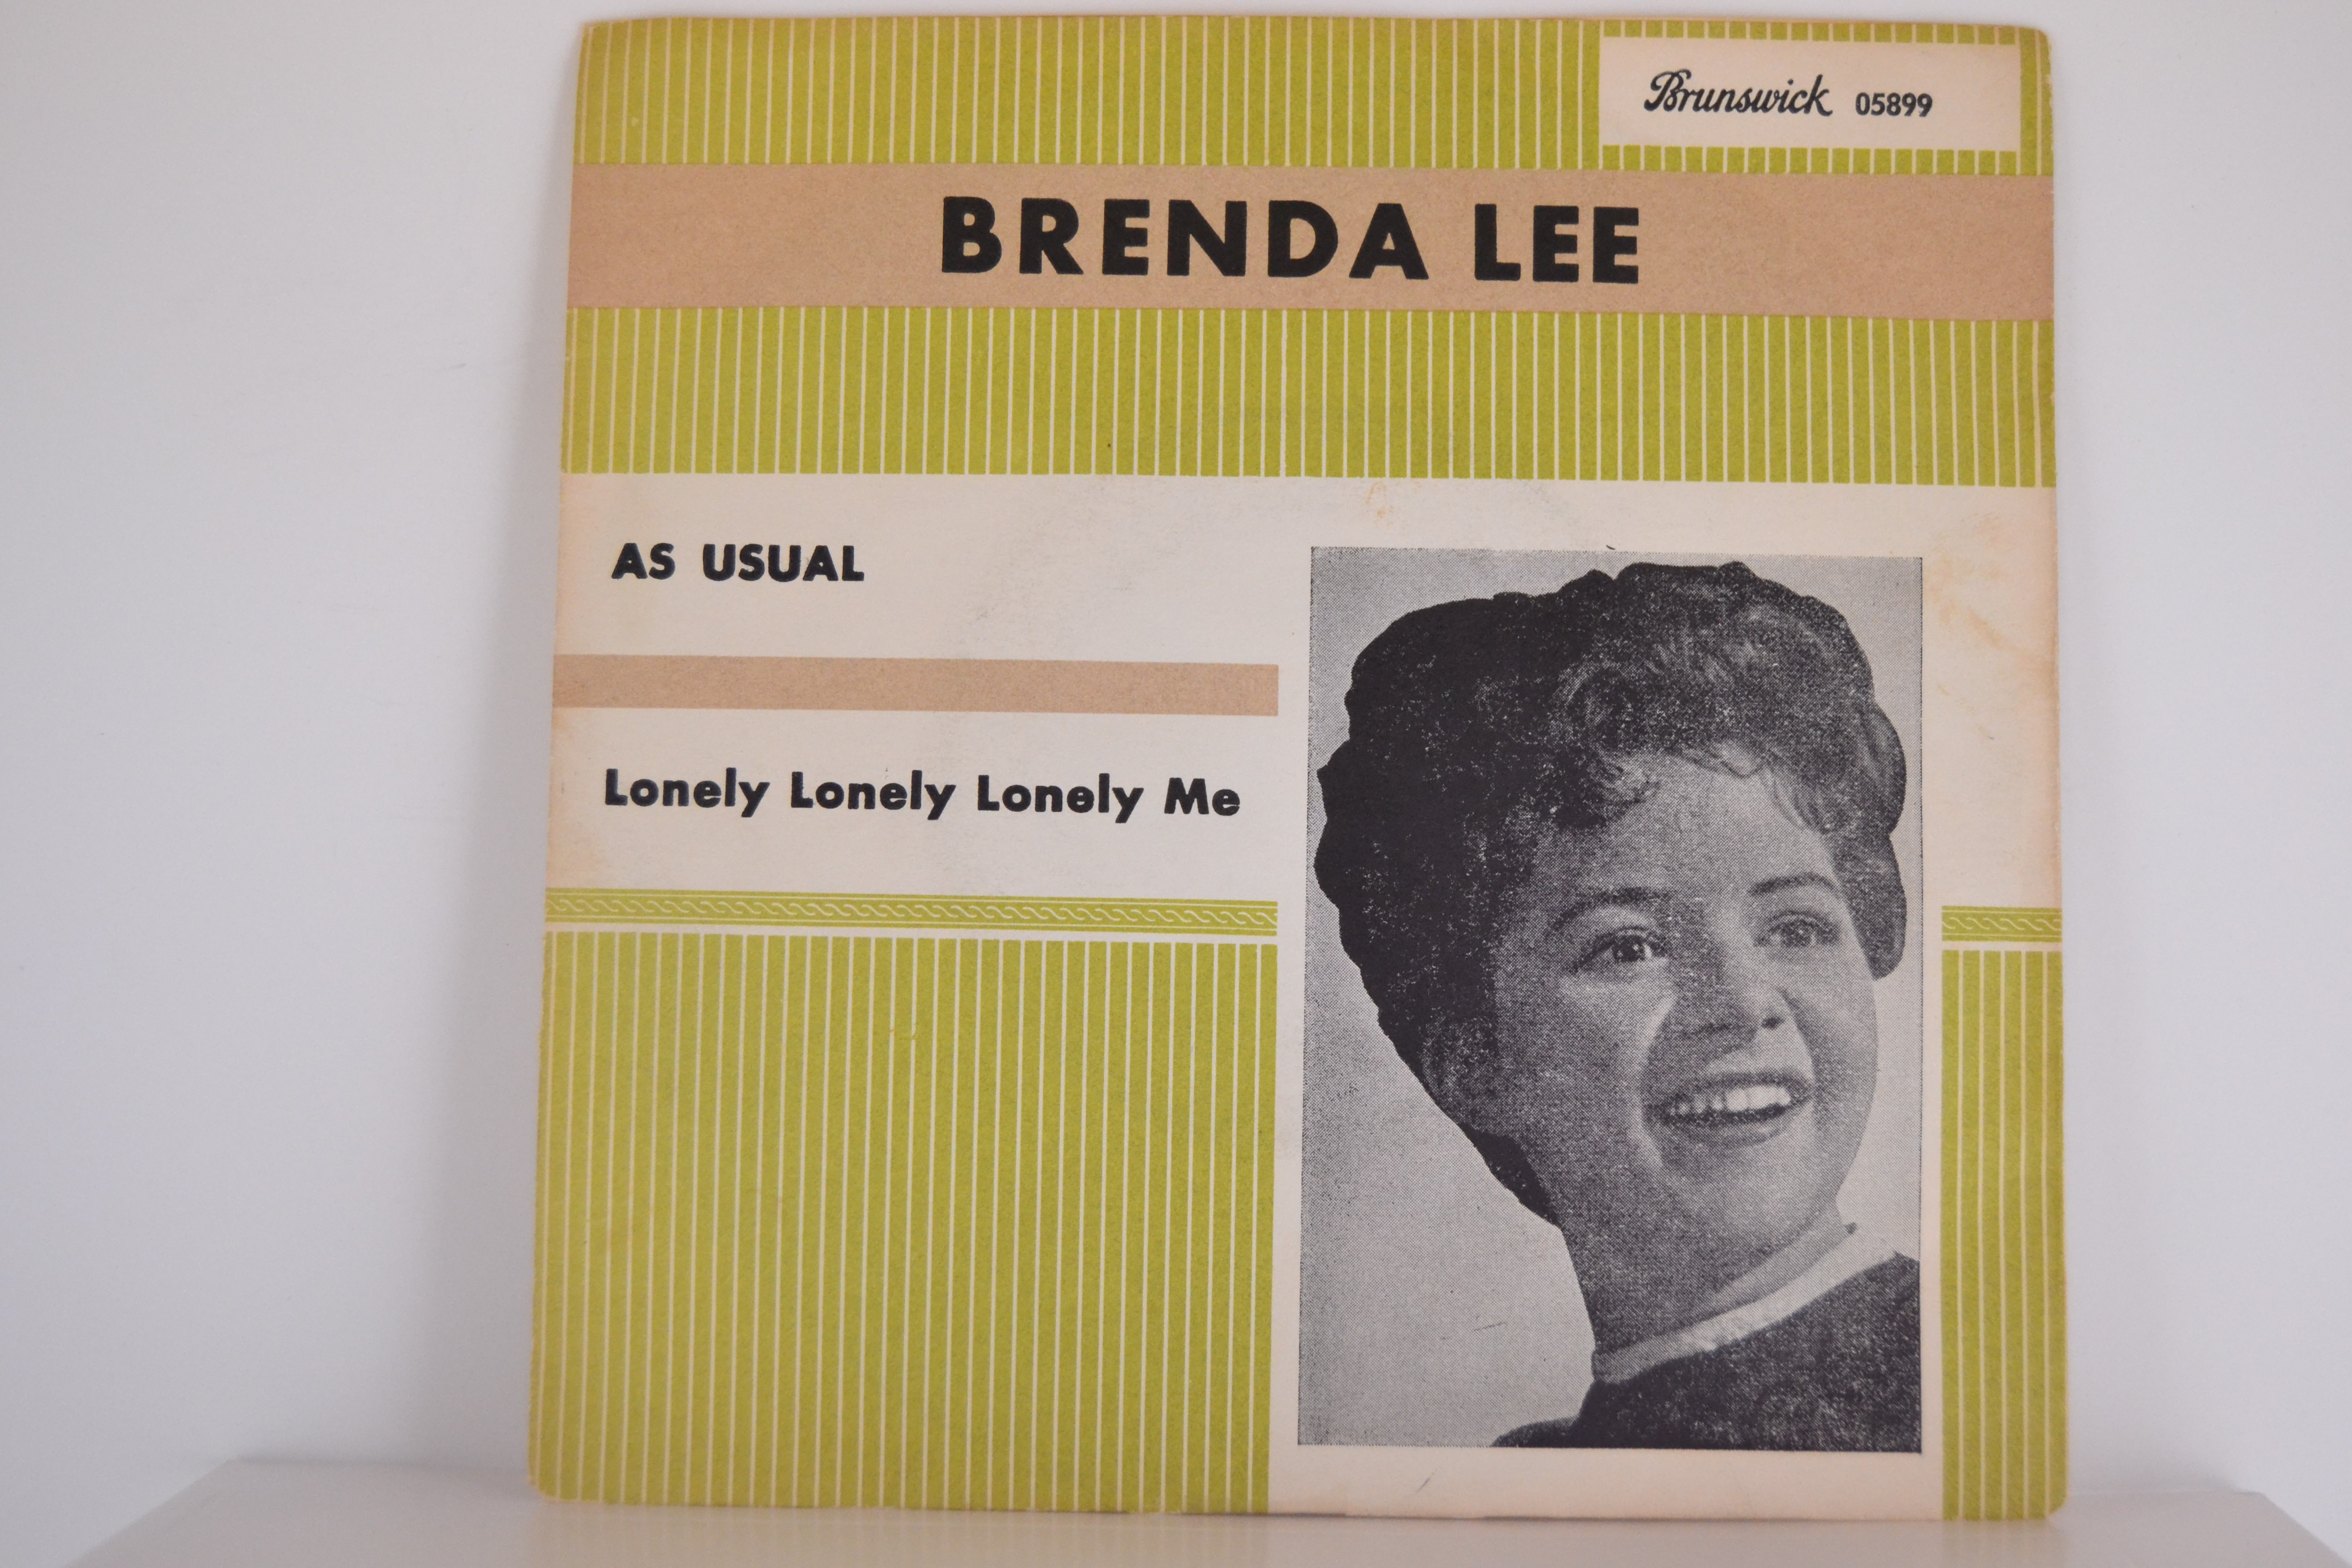 BRENDA LEE : As usual / Lonely lonely lonely me